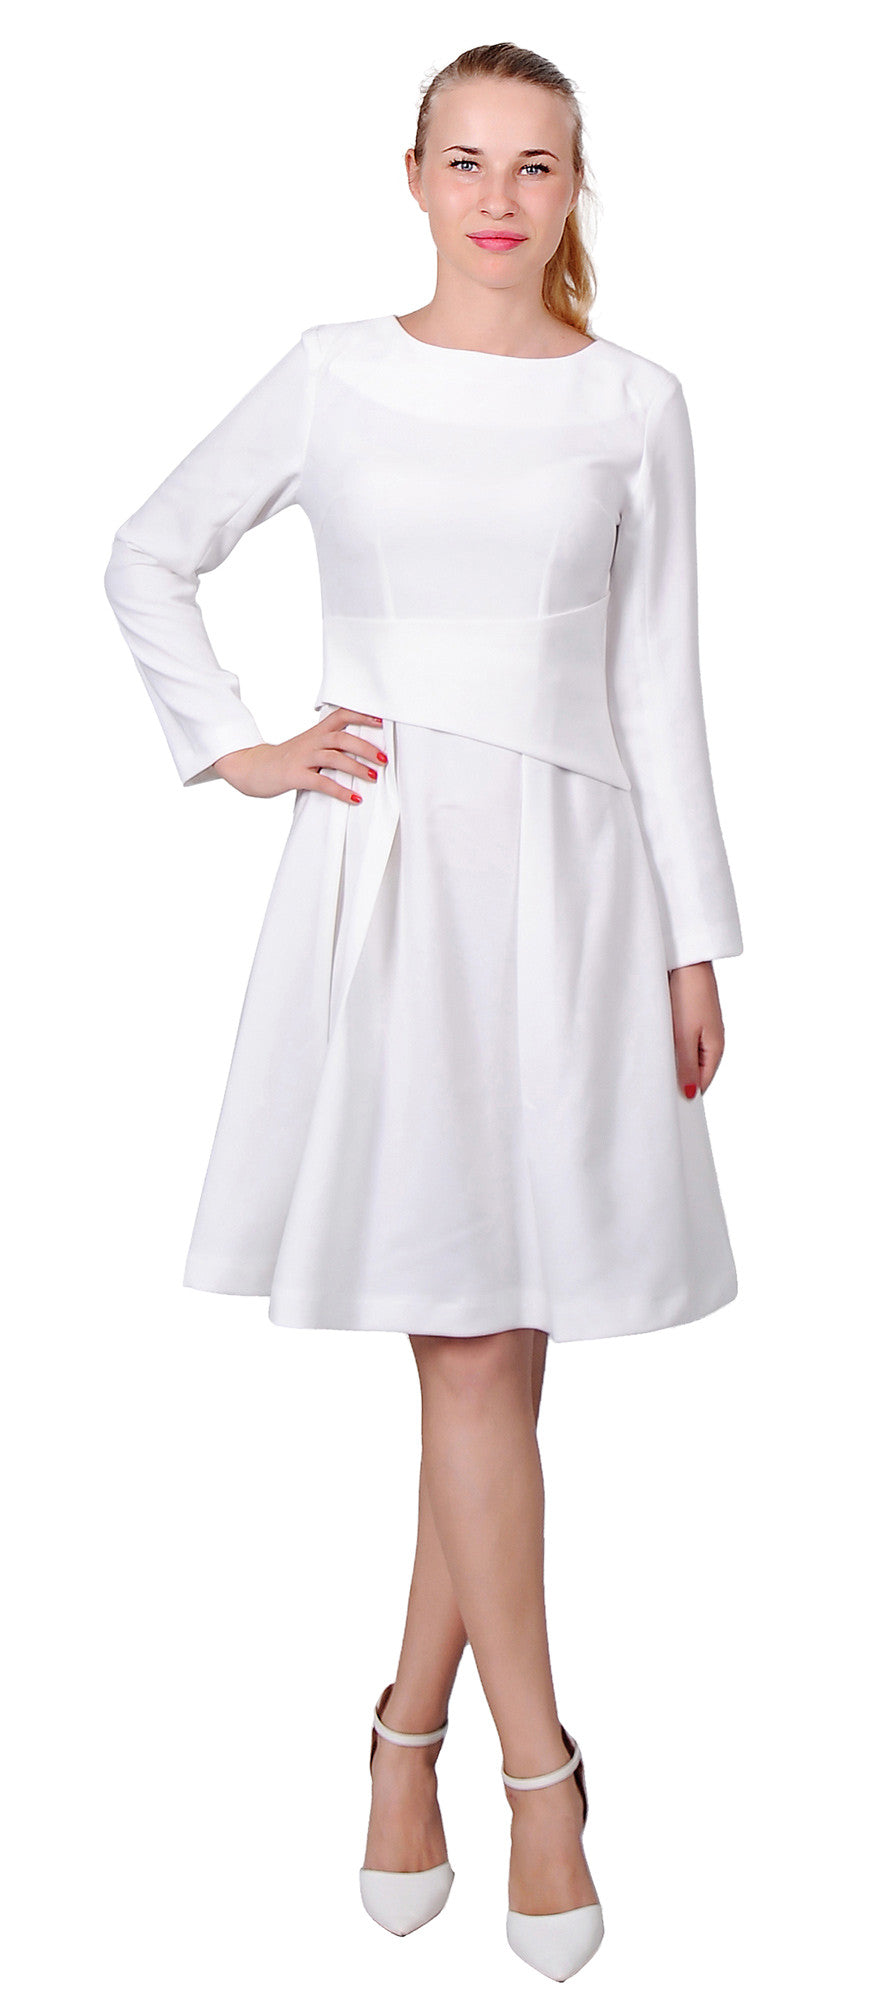 White dress for church - Womens Lady Classy Dress Office Work Church A Line Dresses